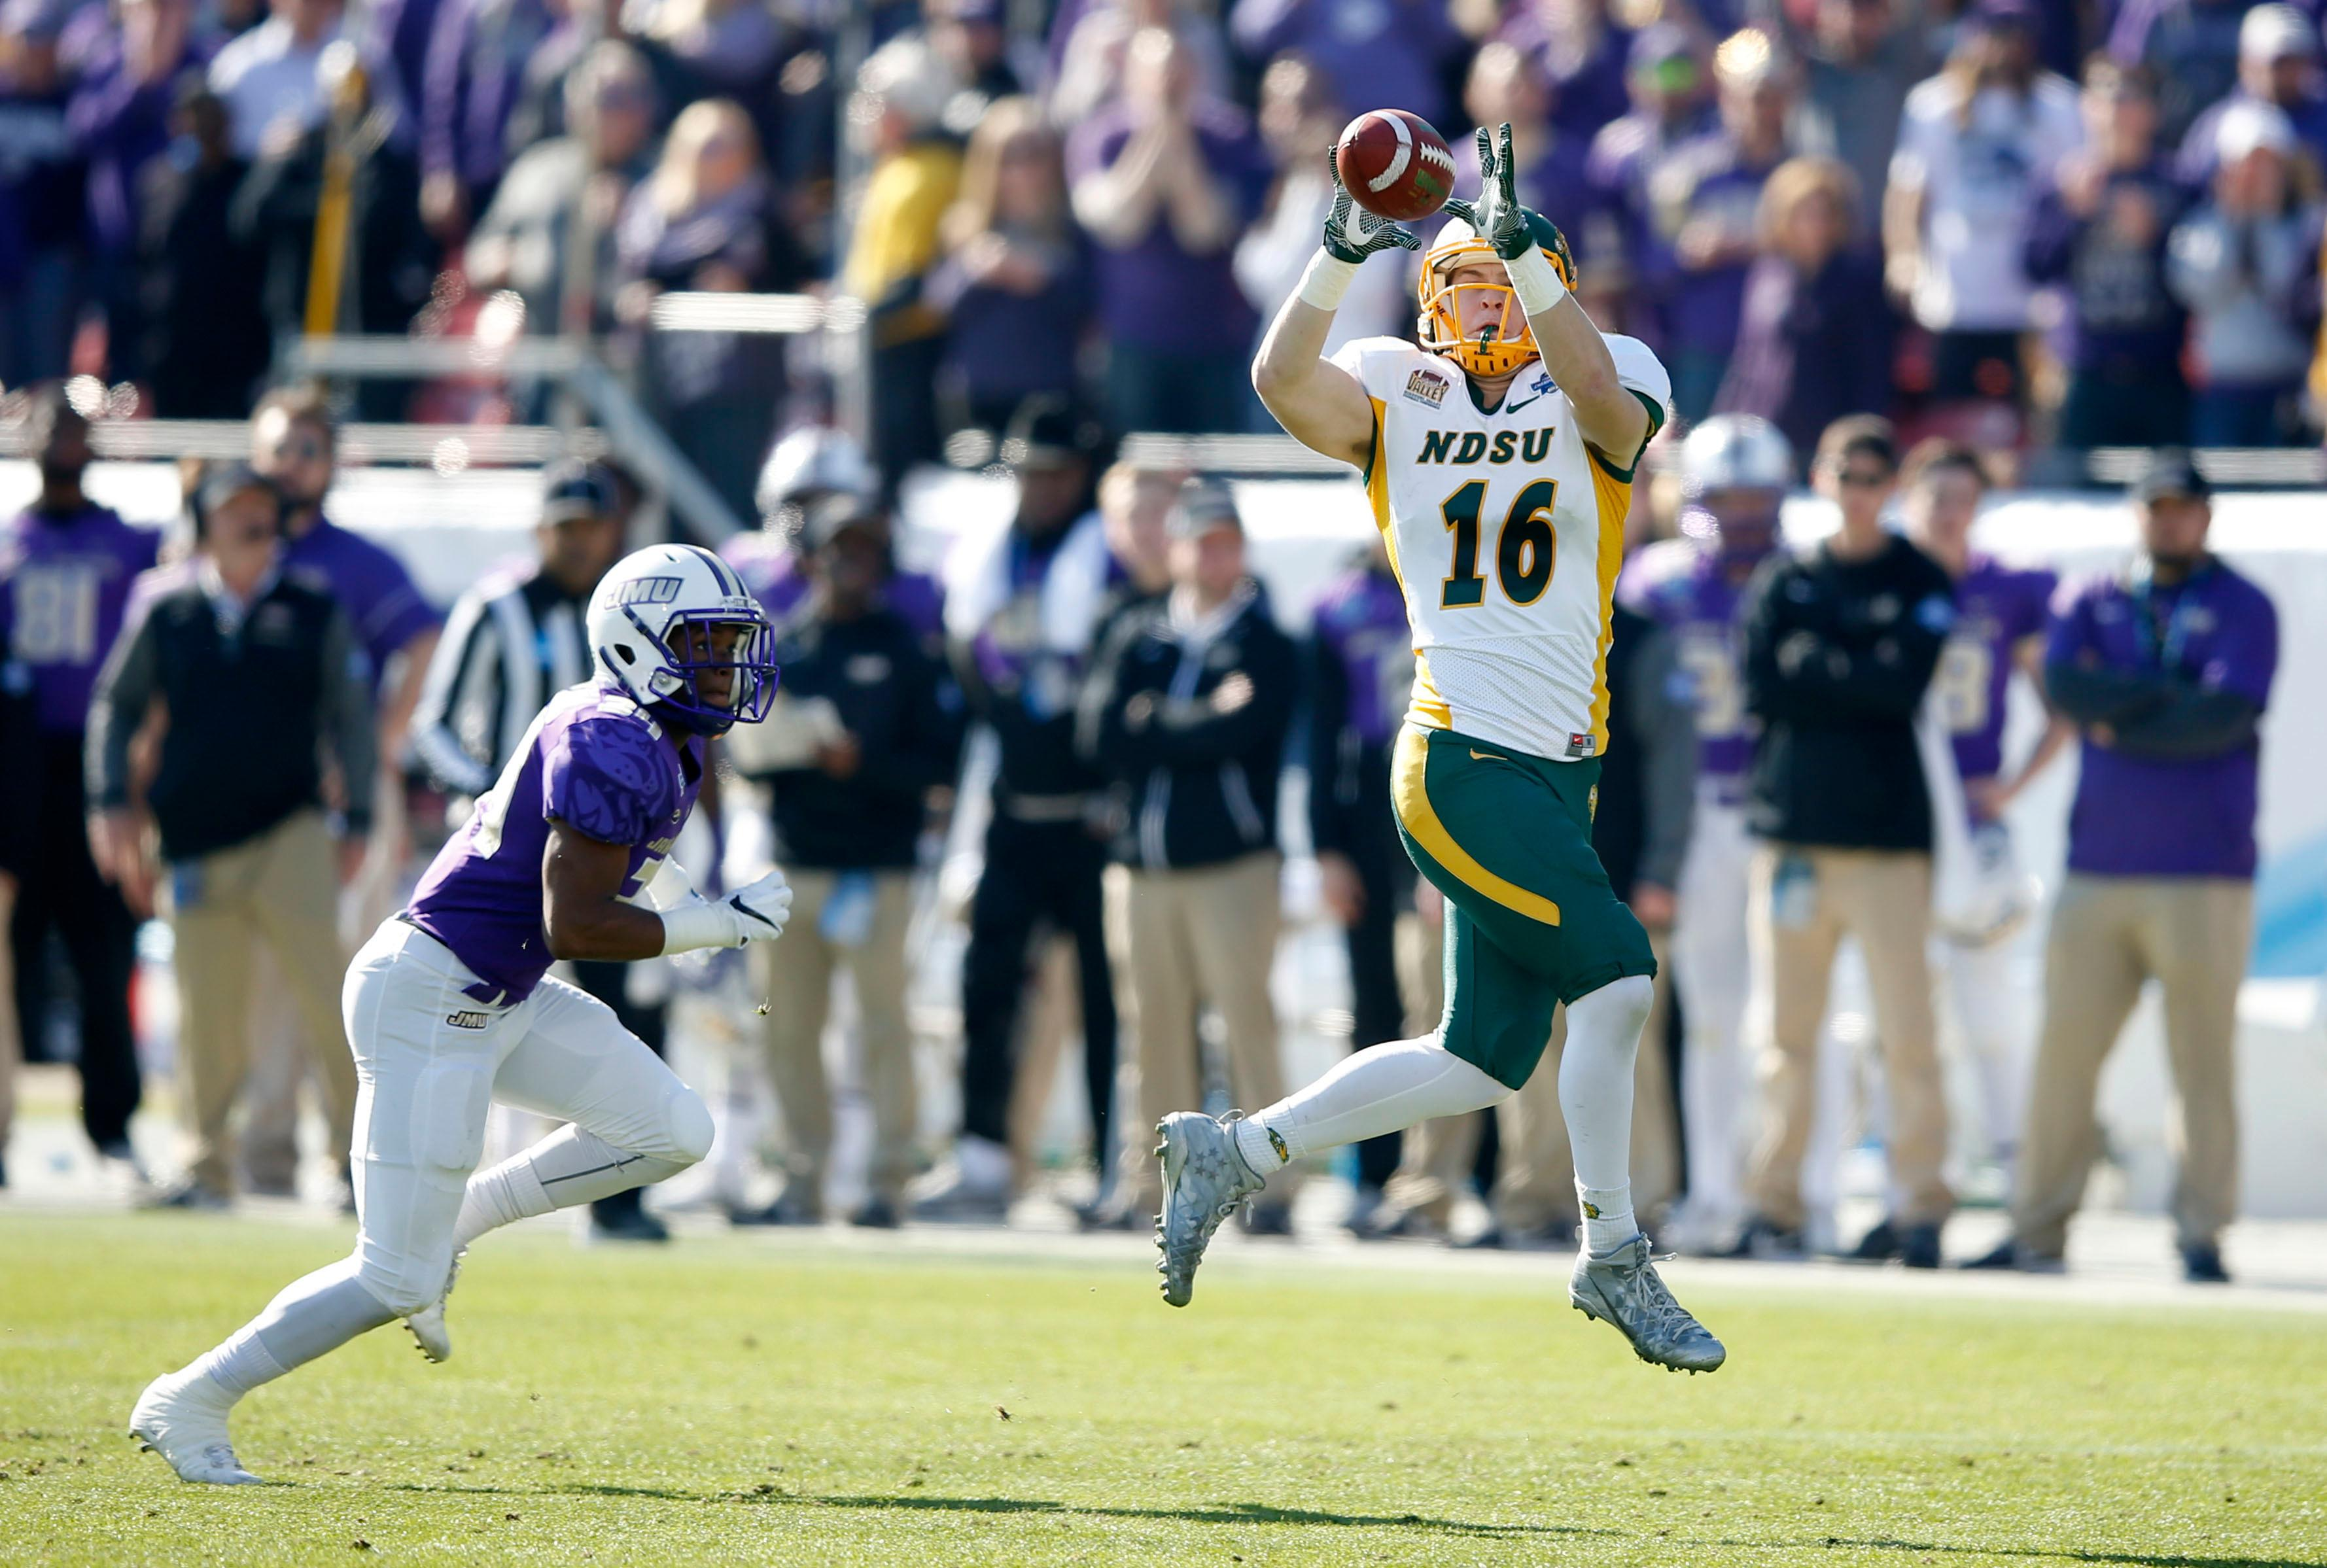 North Dakota State wide receiver RJ Urzendowski (16) catches a pass in front of James Madison cornerback Justin Bethea (34) during the first half of the FCS championship NCAA college football game at Toyota Stadium in Frisco, Texas, Saturday, Jan. 6, 2017. (Vernon Bryant/The Dallas Morning News via AP)